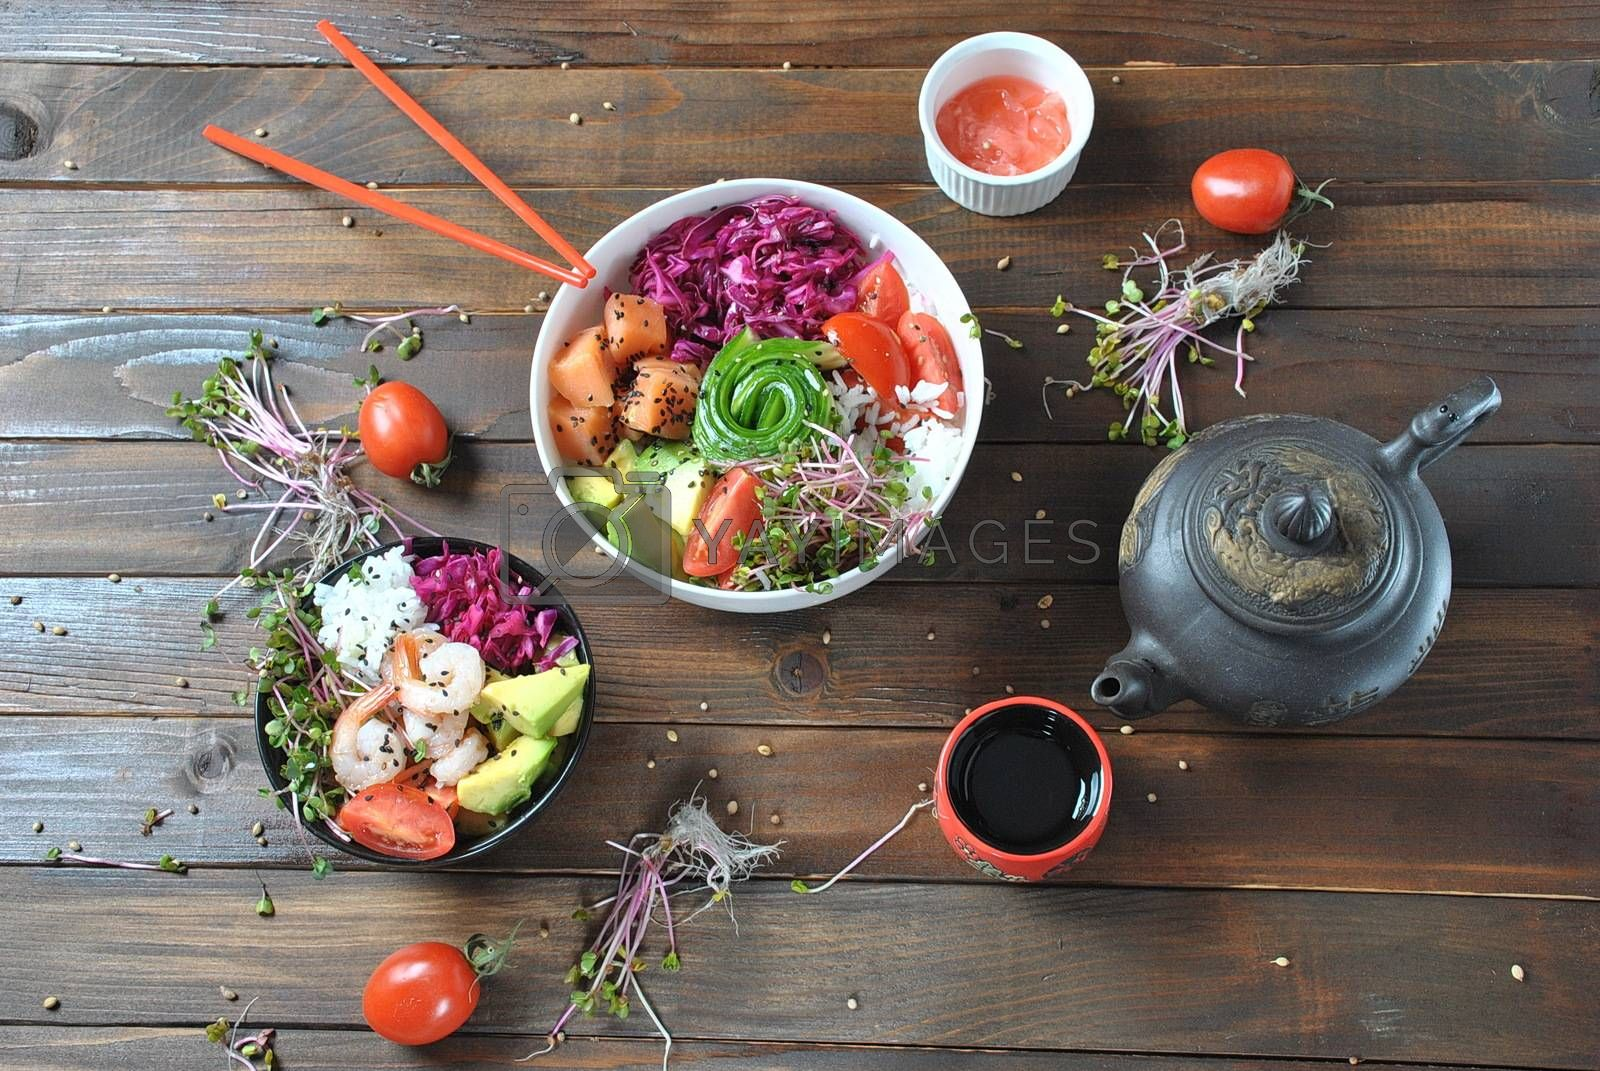 Organic food. Fresh seafood recipe. Two fresh poke bowls with salmon, shrimps, rice, red cabbage, avocado, cherry tomatoes and radish sprouts on wooden background. Food concept Poke Bowl